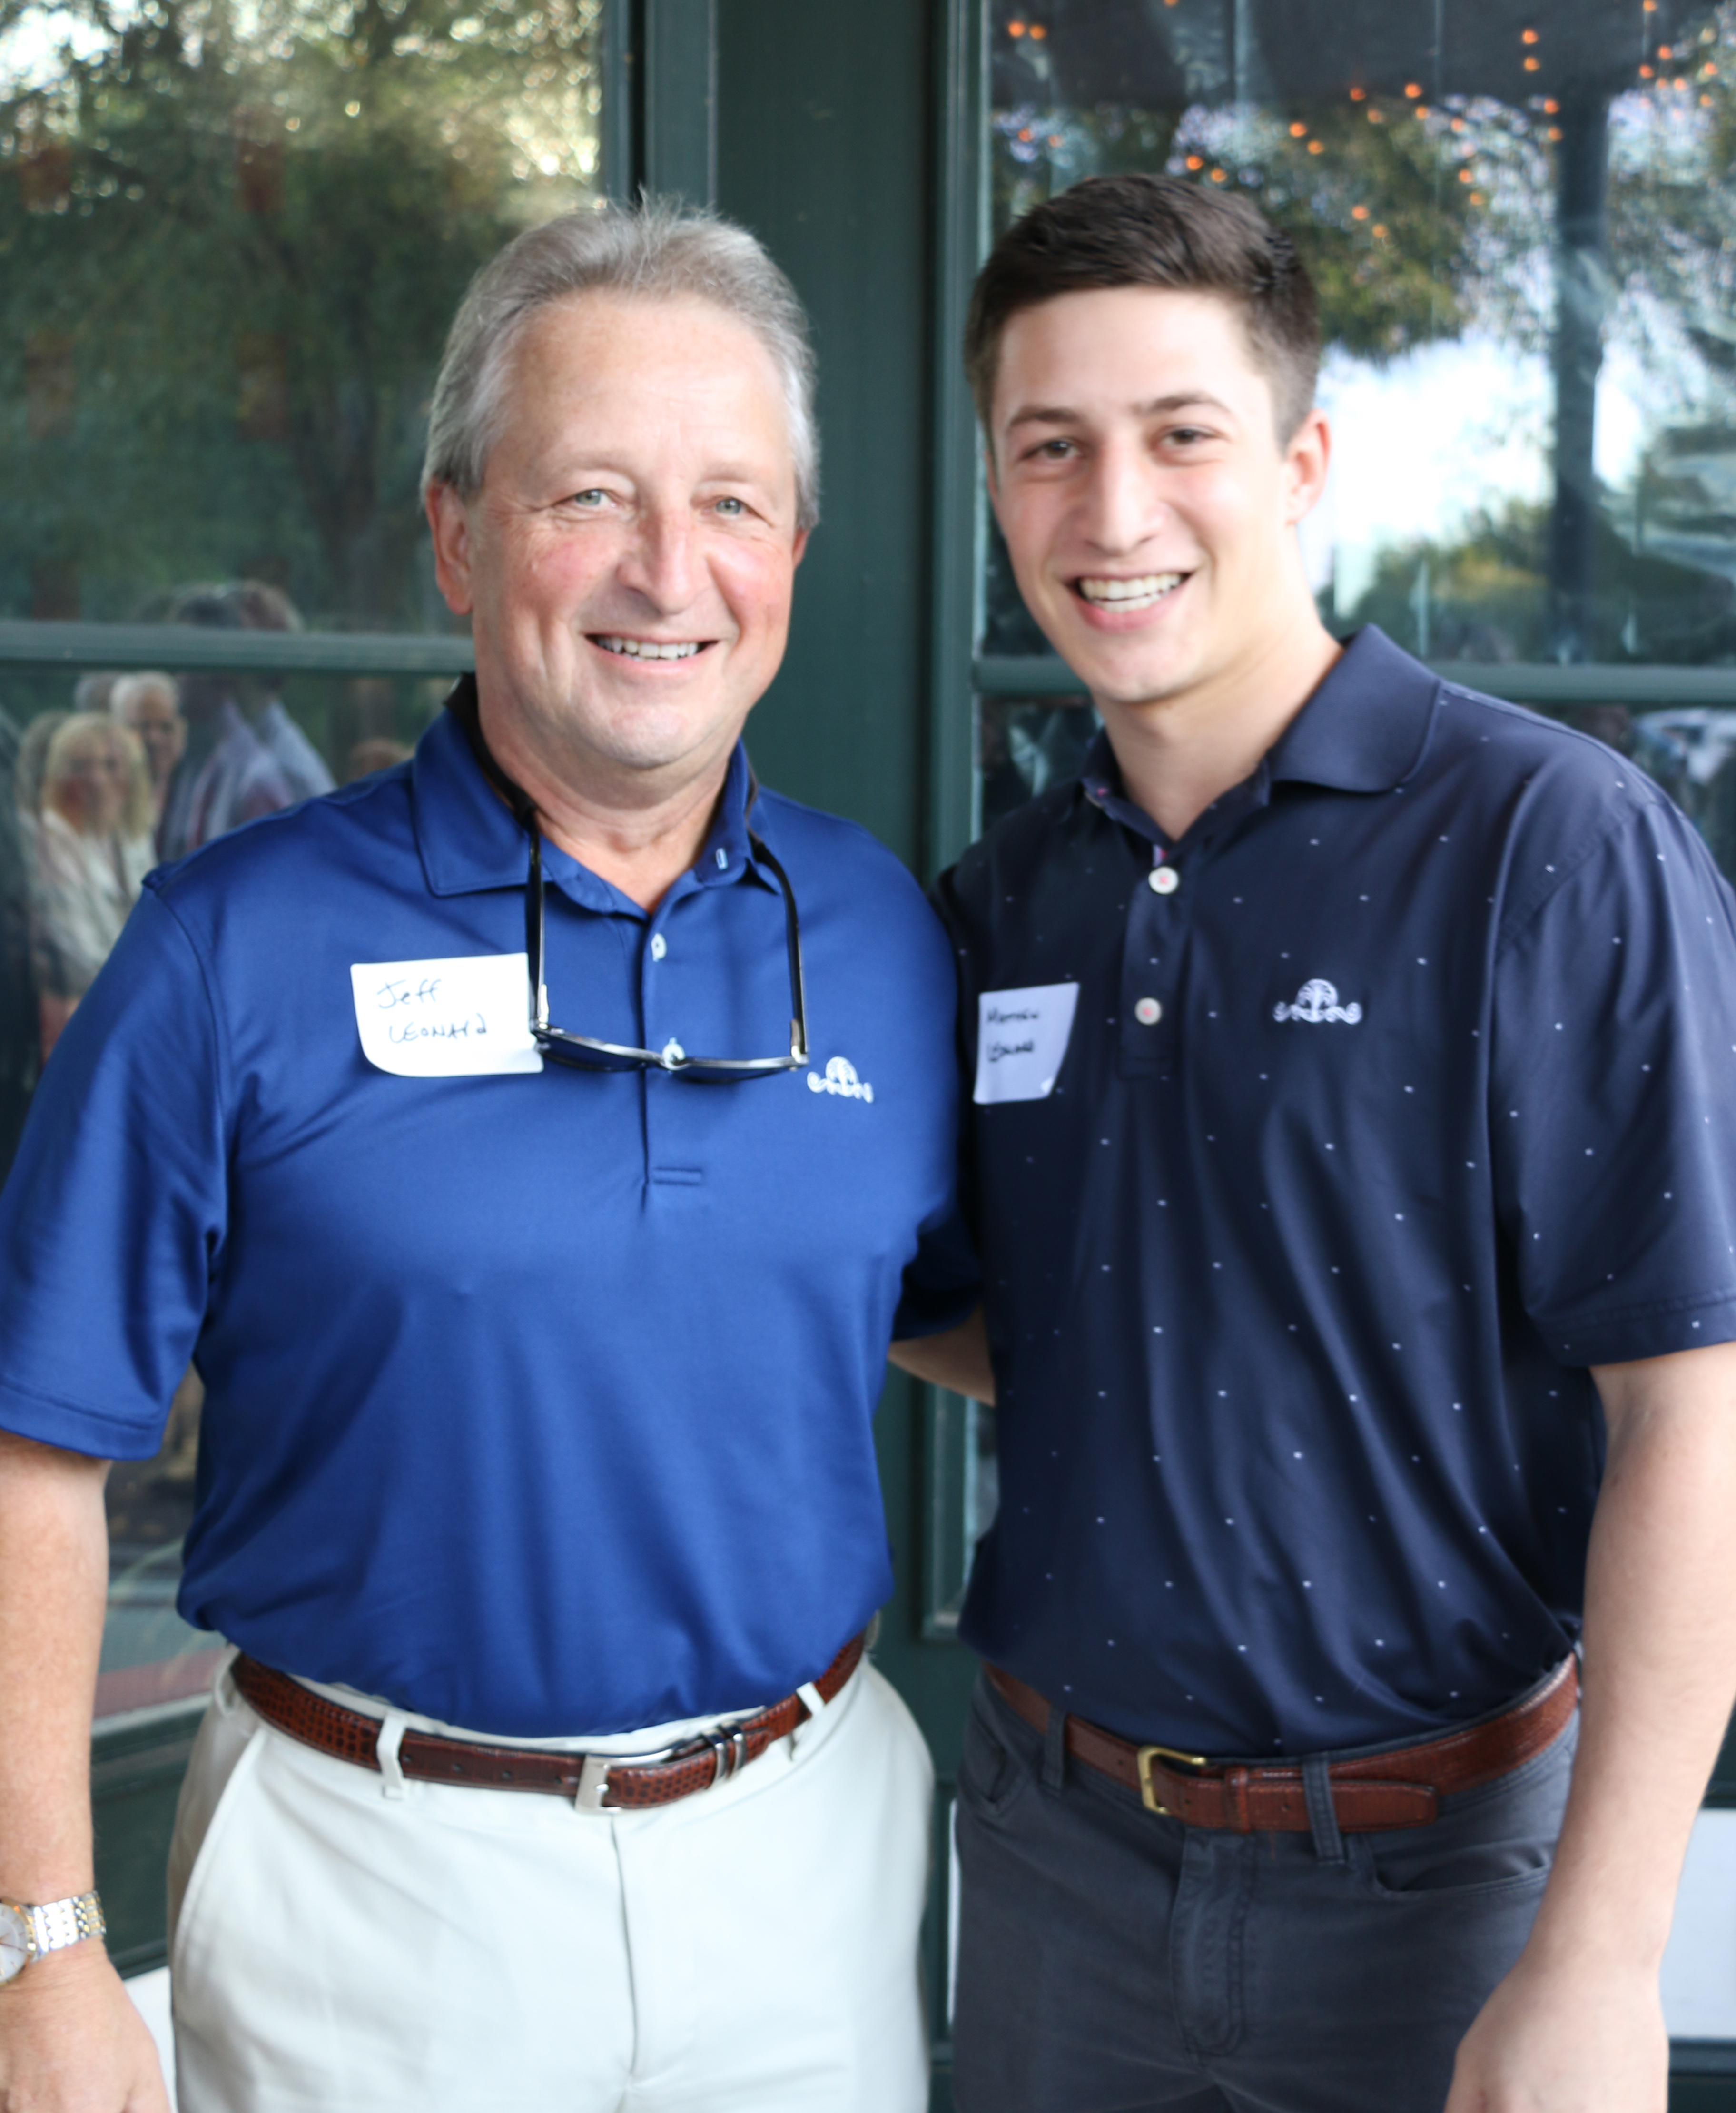 Daniel Island Real Estate VP of Sales and broker-in-charge Jeff Leonard, left, introduced his son Matthew to the many attendees at the DIBA October Block Party at LIDI.